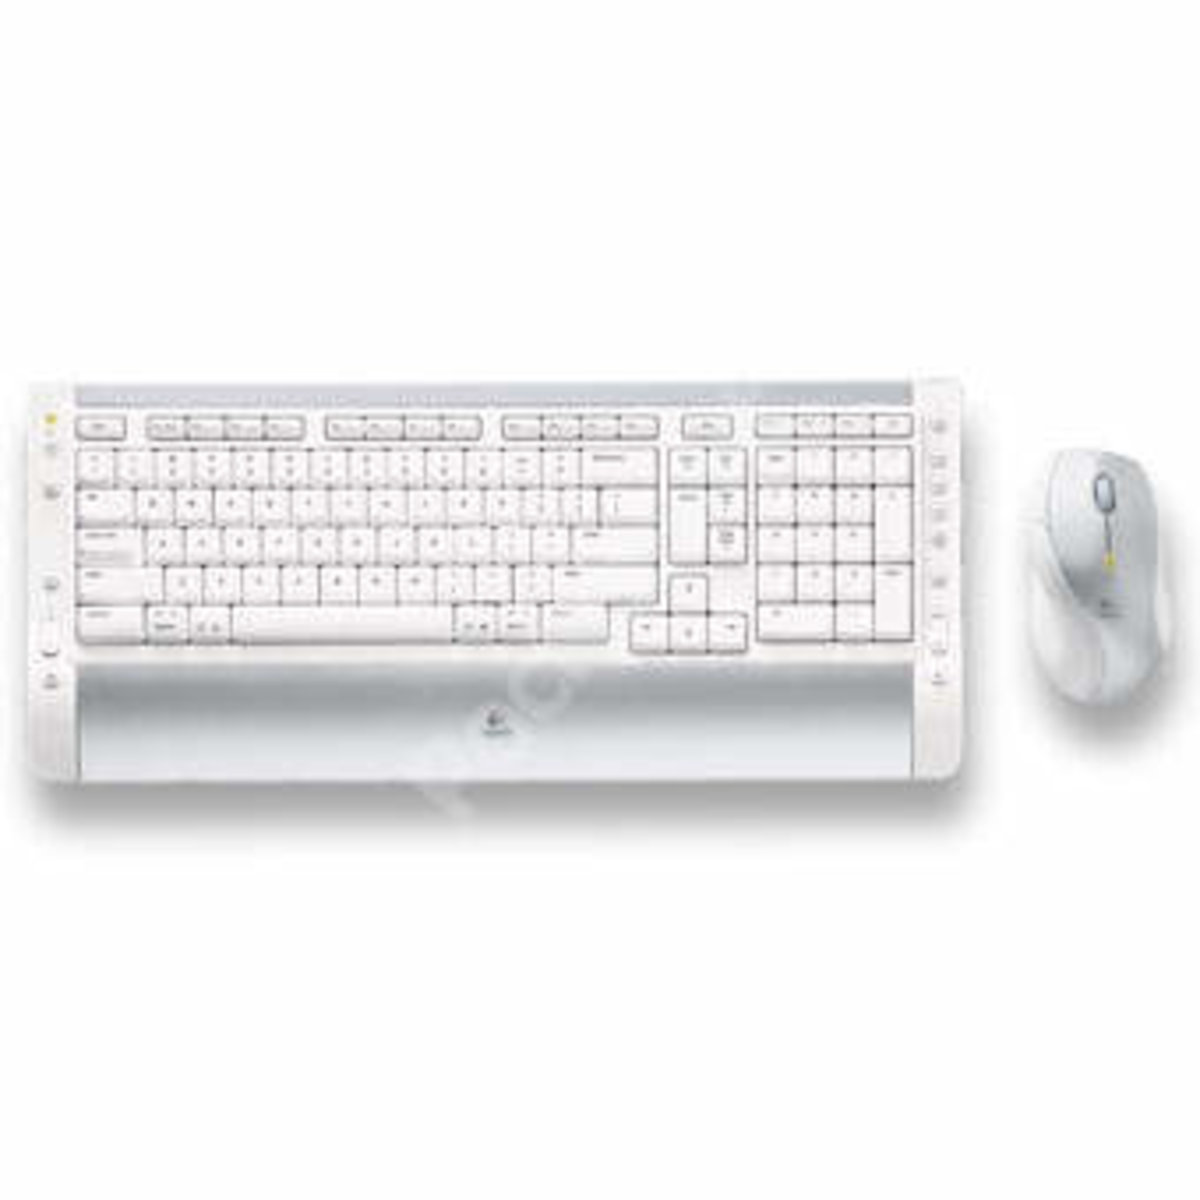 Logitech cordless s530 keyboard mouse for mac siliconpolar's diary.